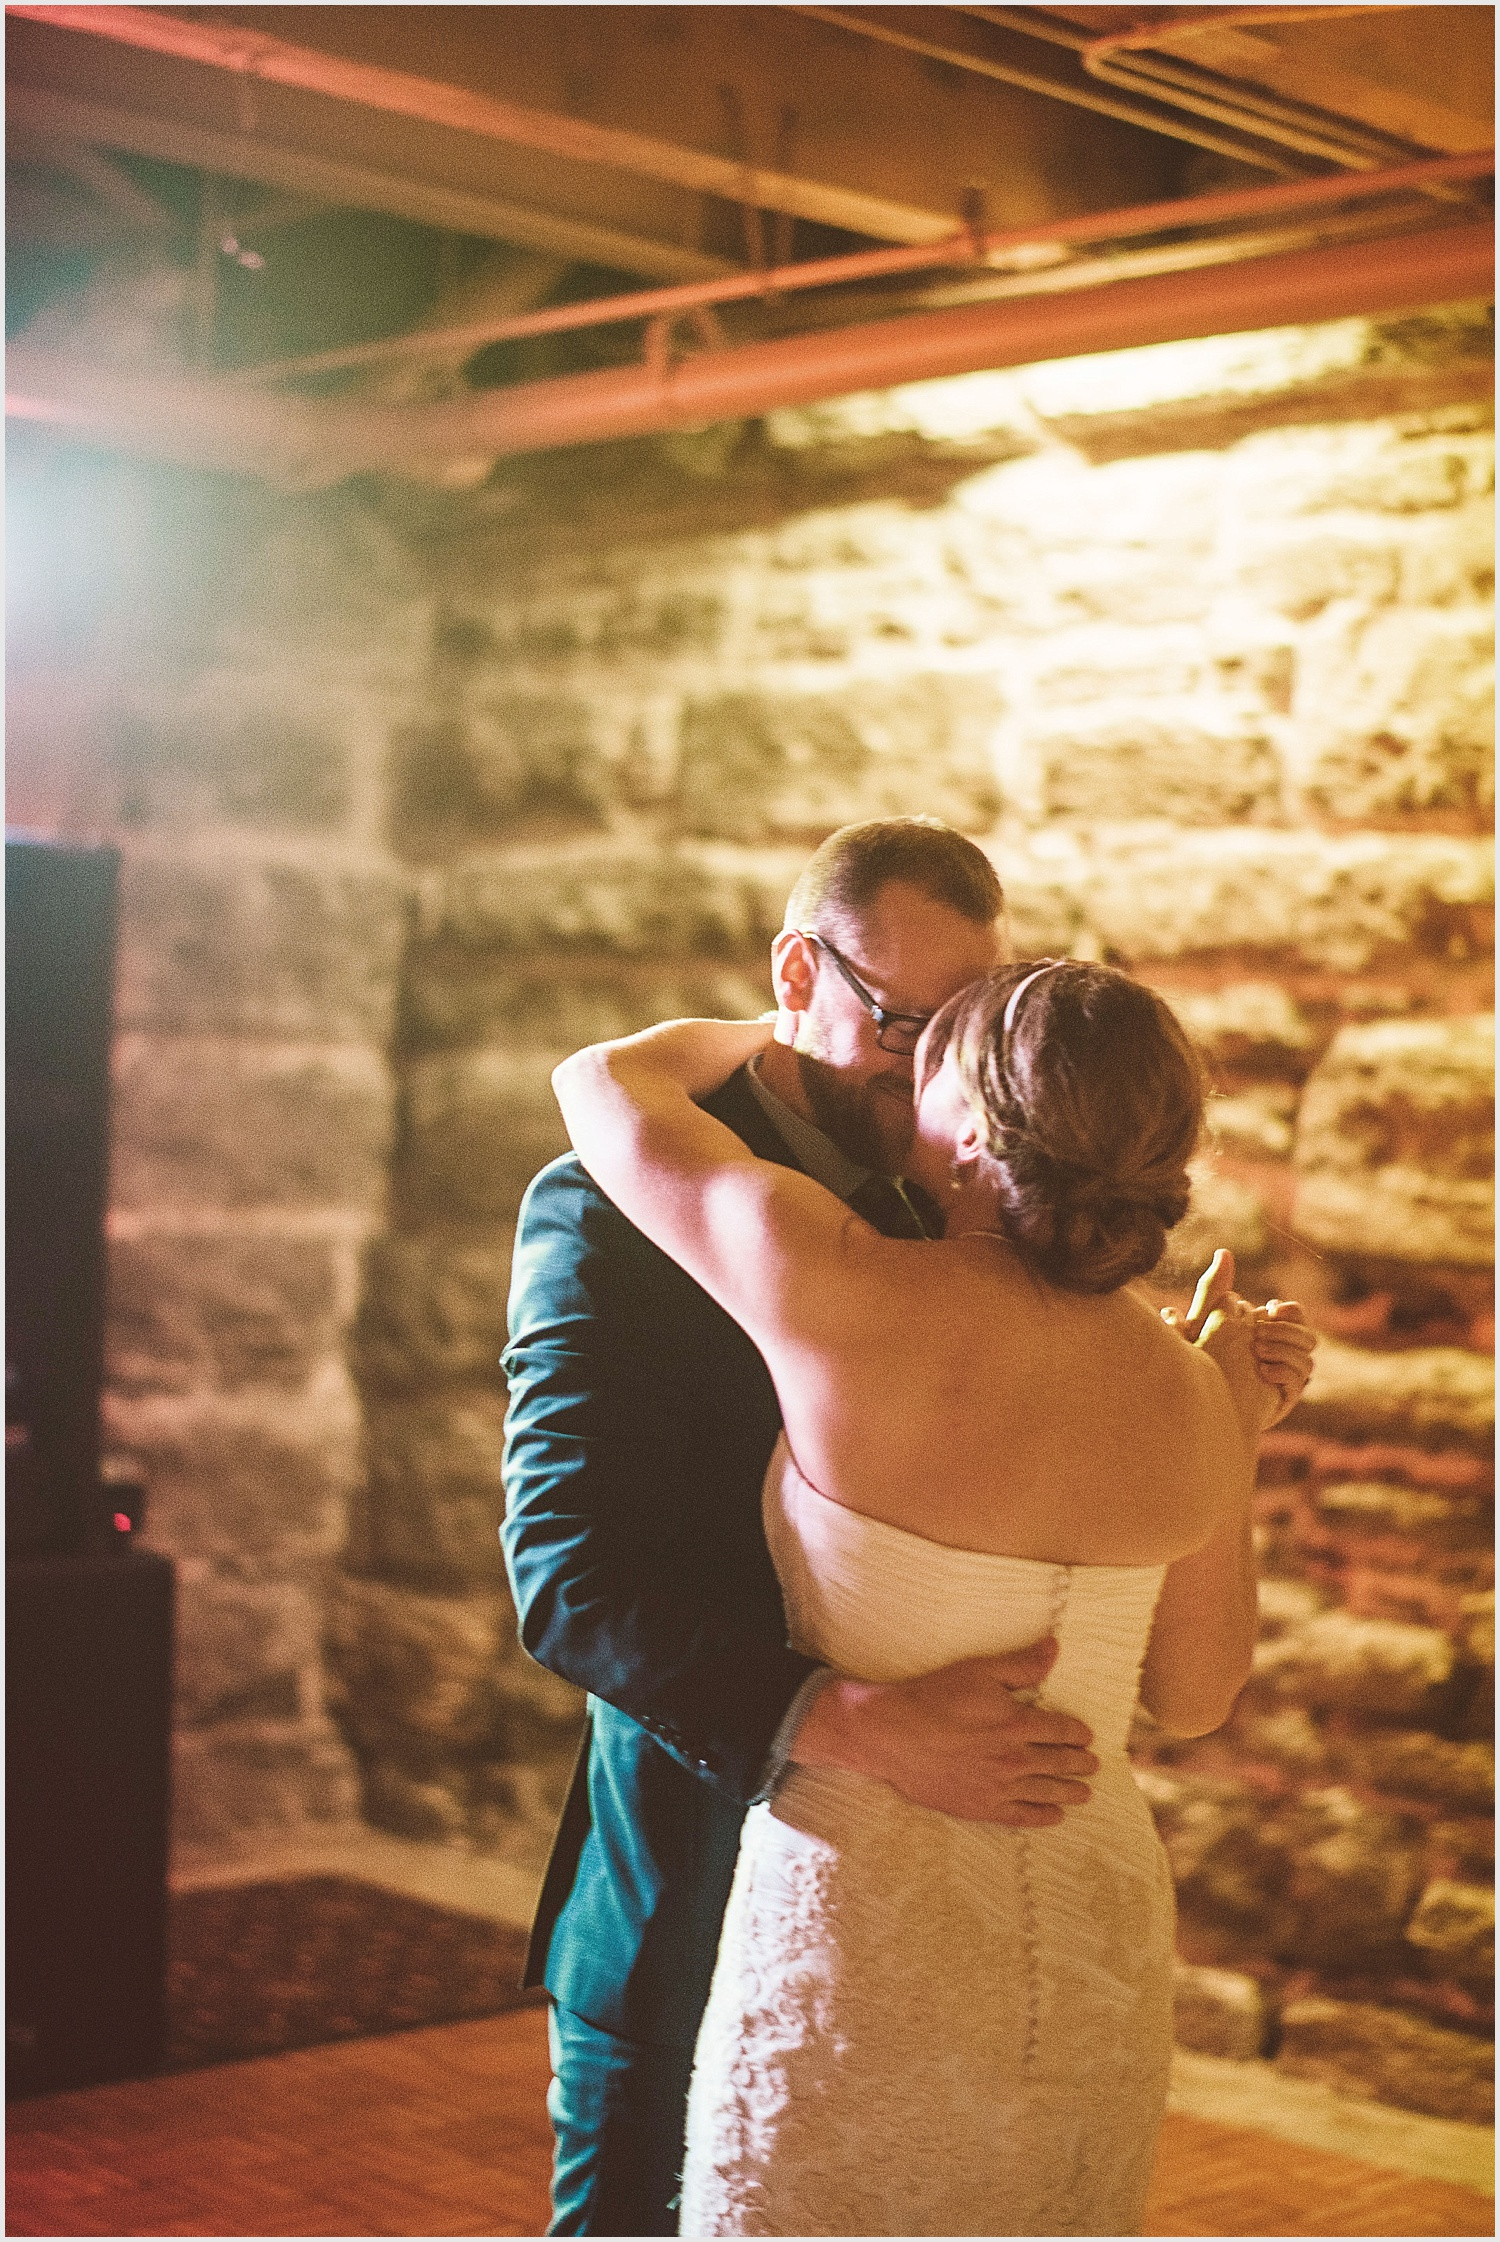 stpaul_wedding_lucas_botz_photography_029.jpg